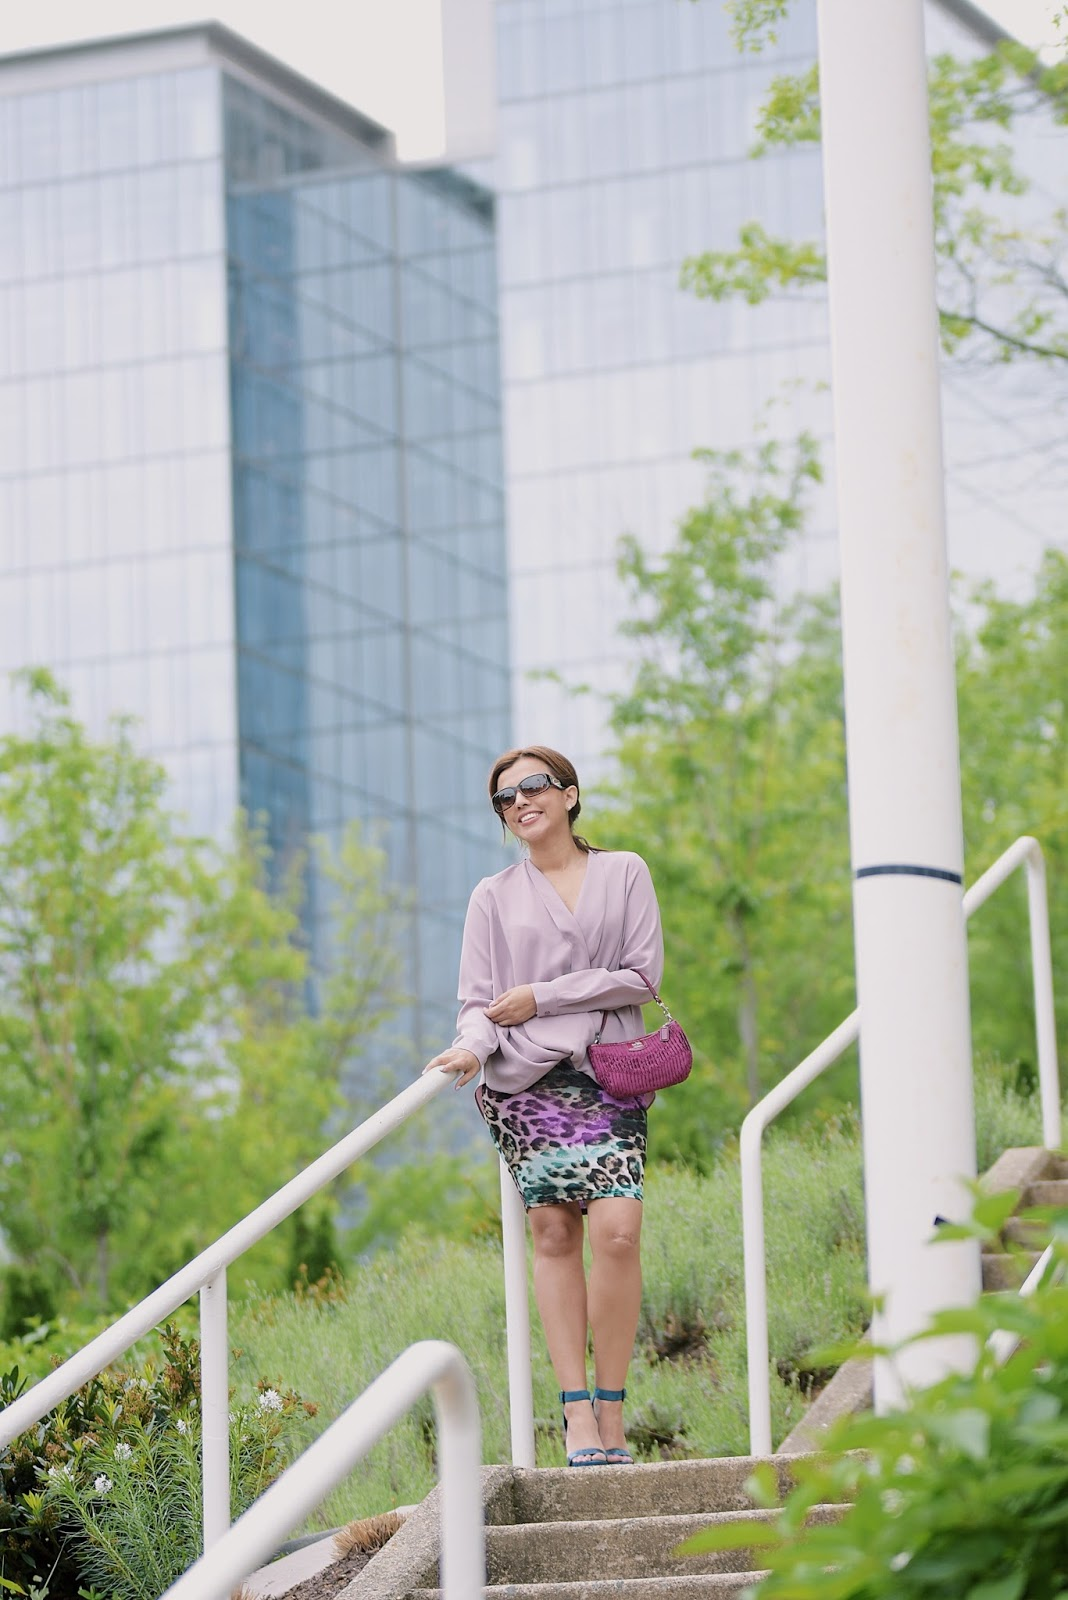 Animal Print And Mauve For The Weekend-shoptobi-mariestilo-lookoftheday-forever21-fashionblogger-streetstyle